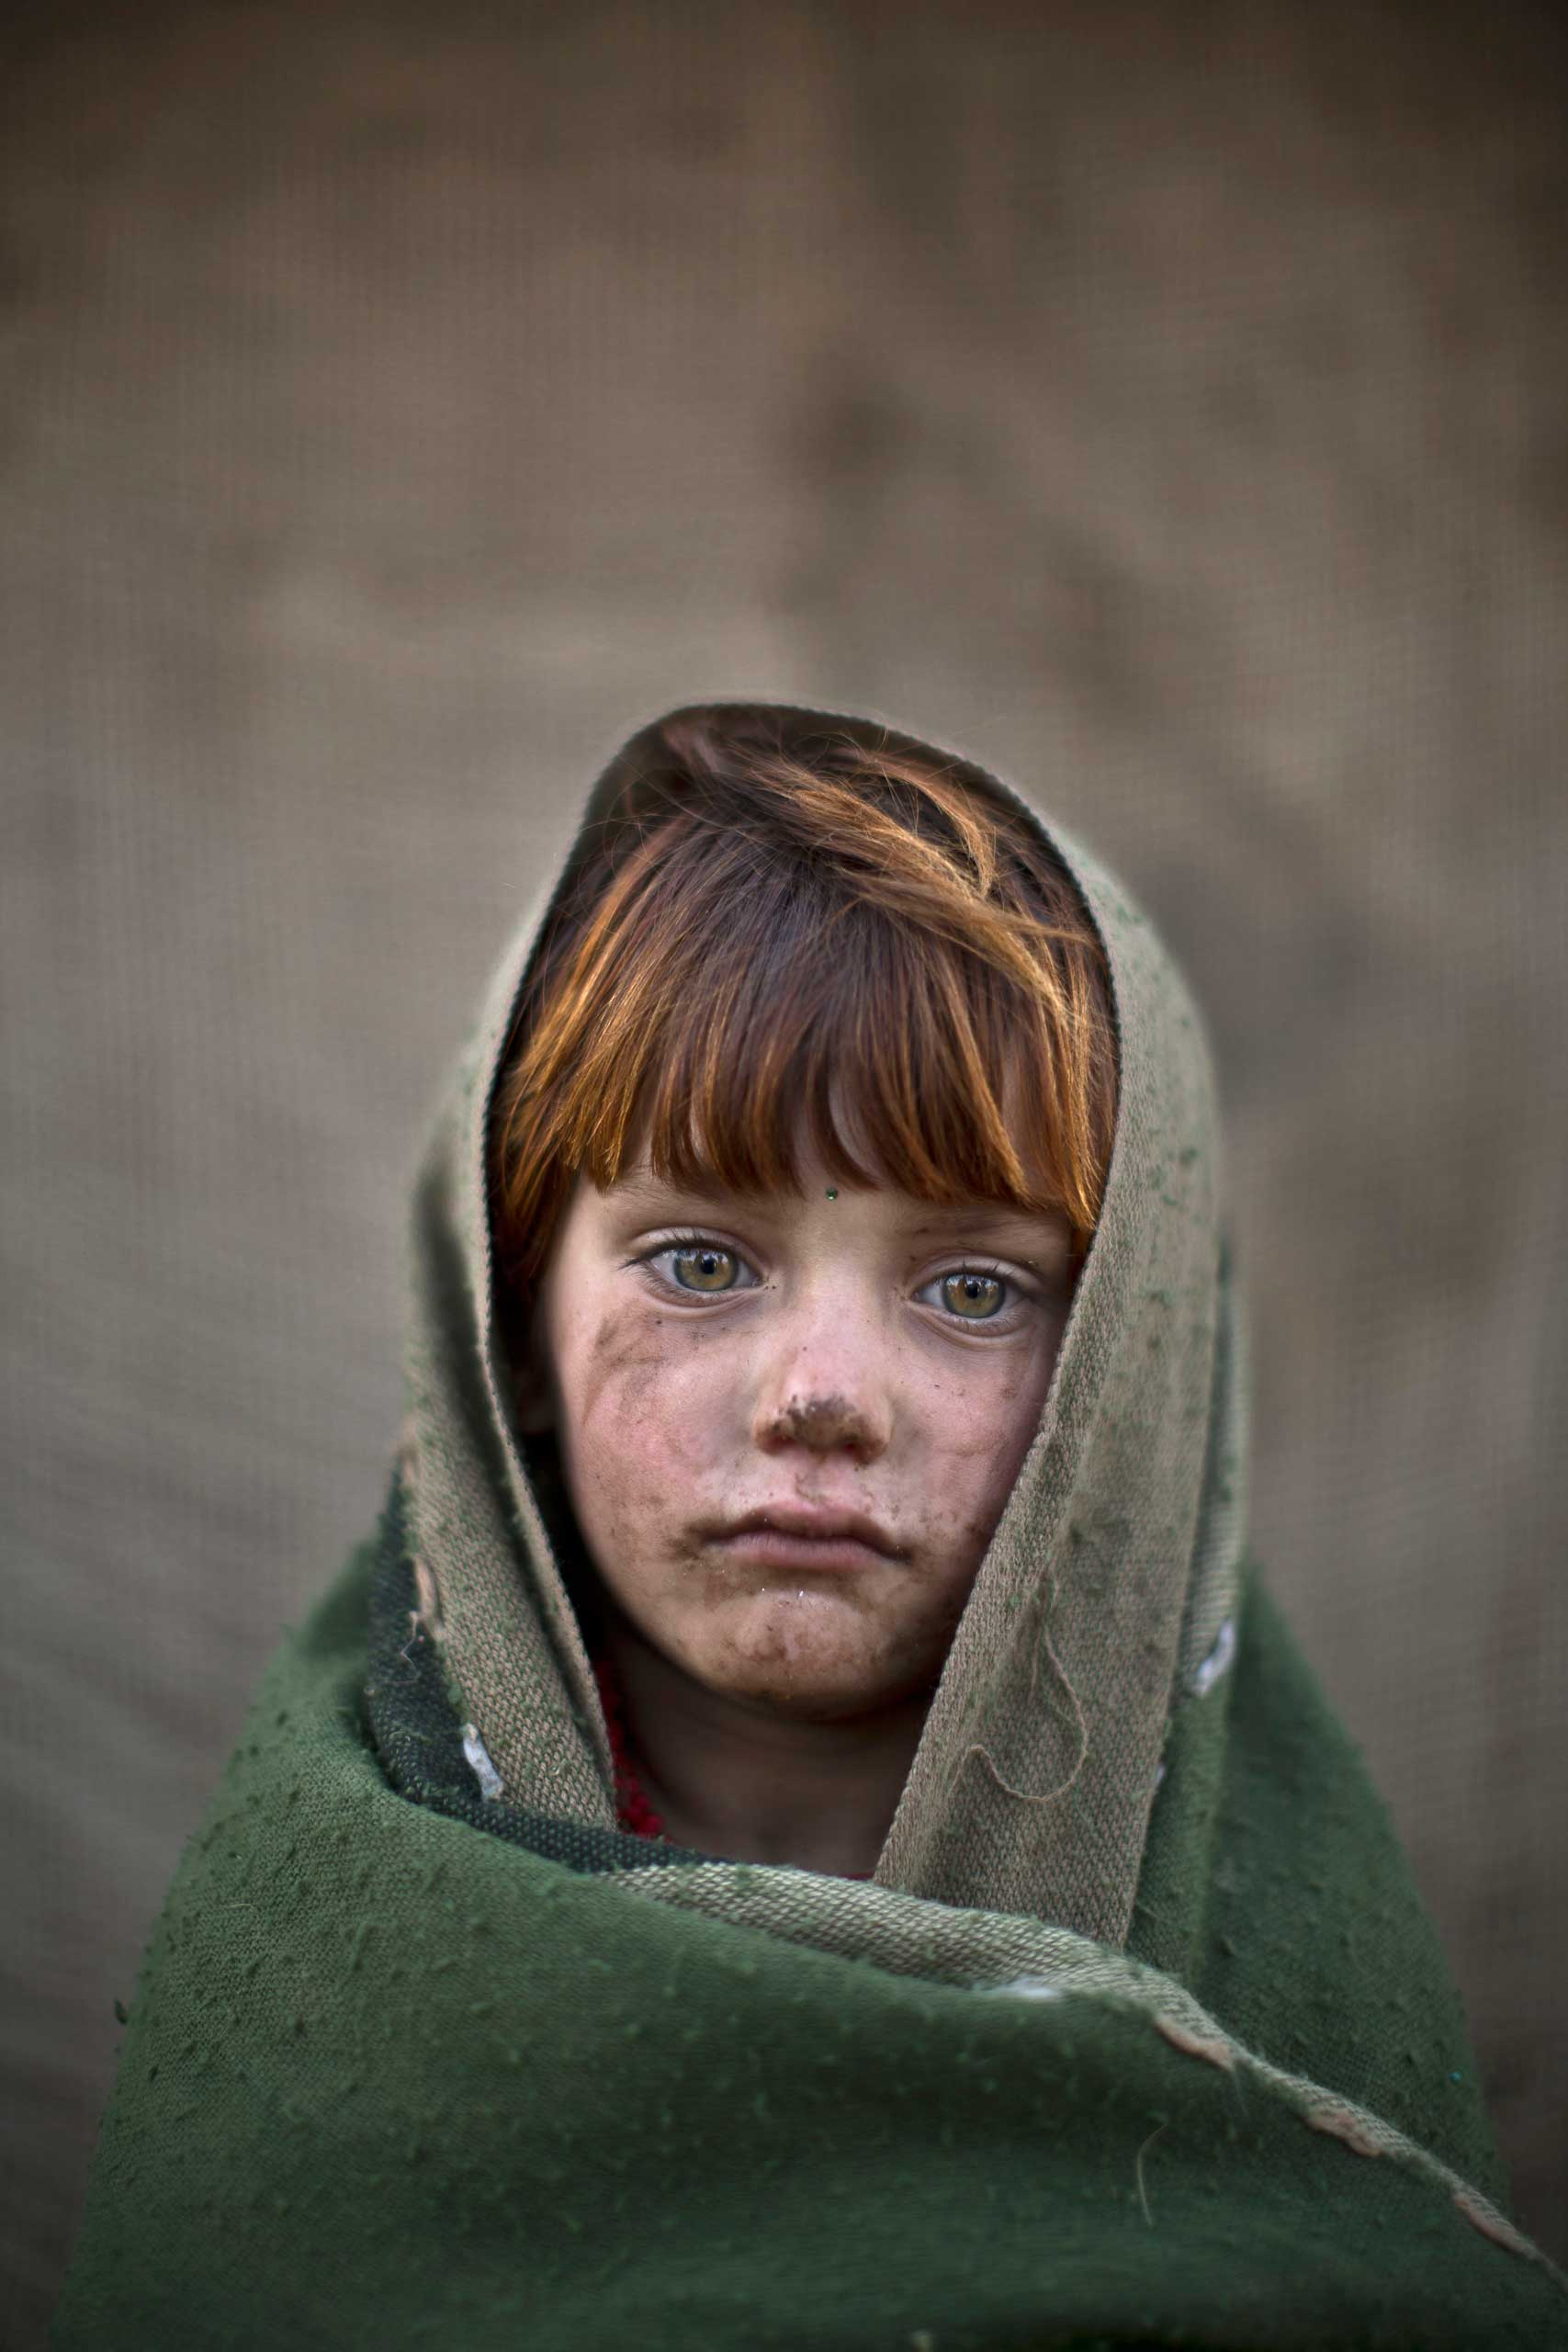 An Afghan refugee girl, laiba Hazrat, 6, poses for a picture, while playing with other children in a slum on the outskirts of Islamabad, Pakistan. Jan. 24, 2014.